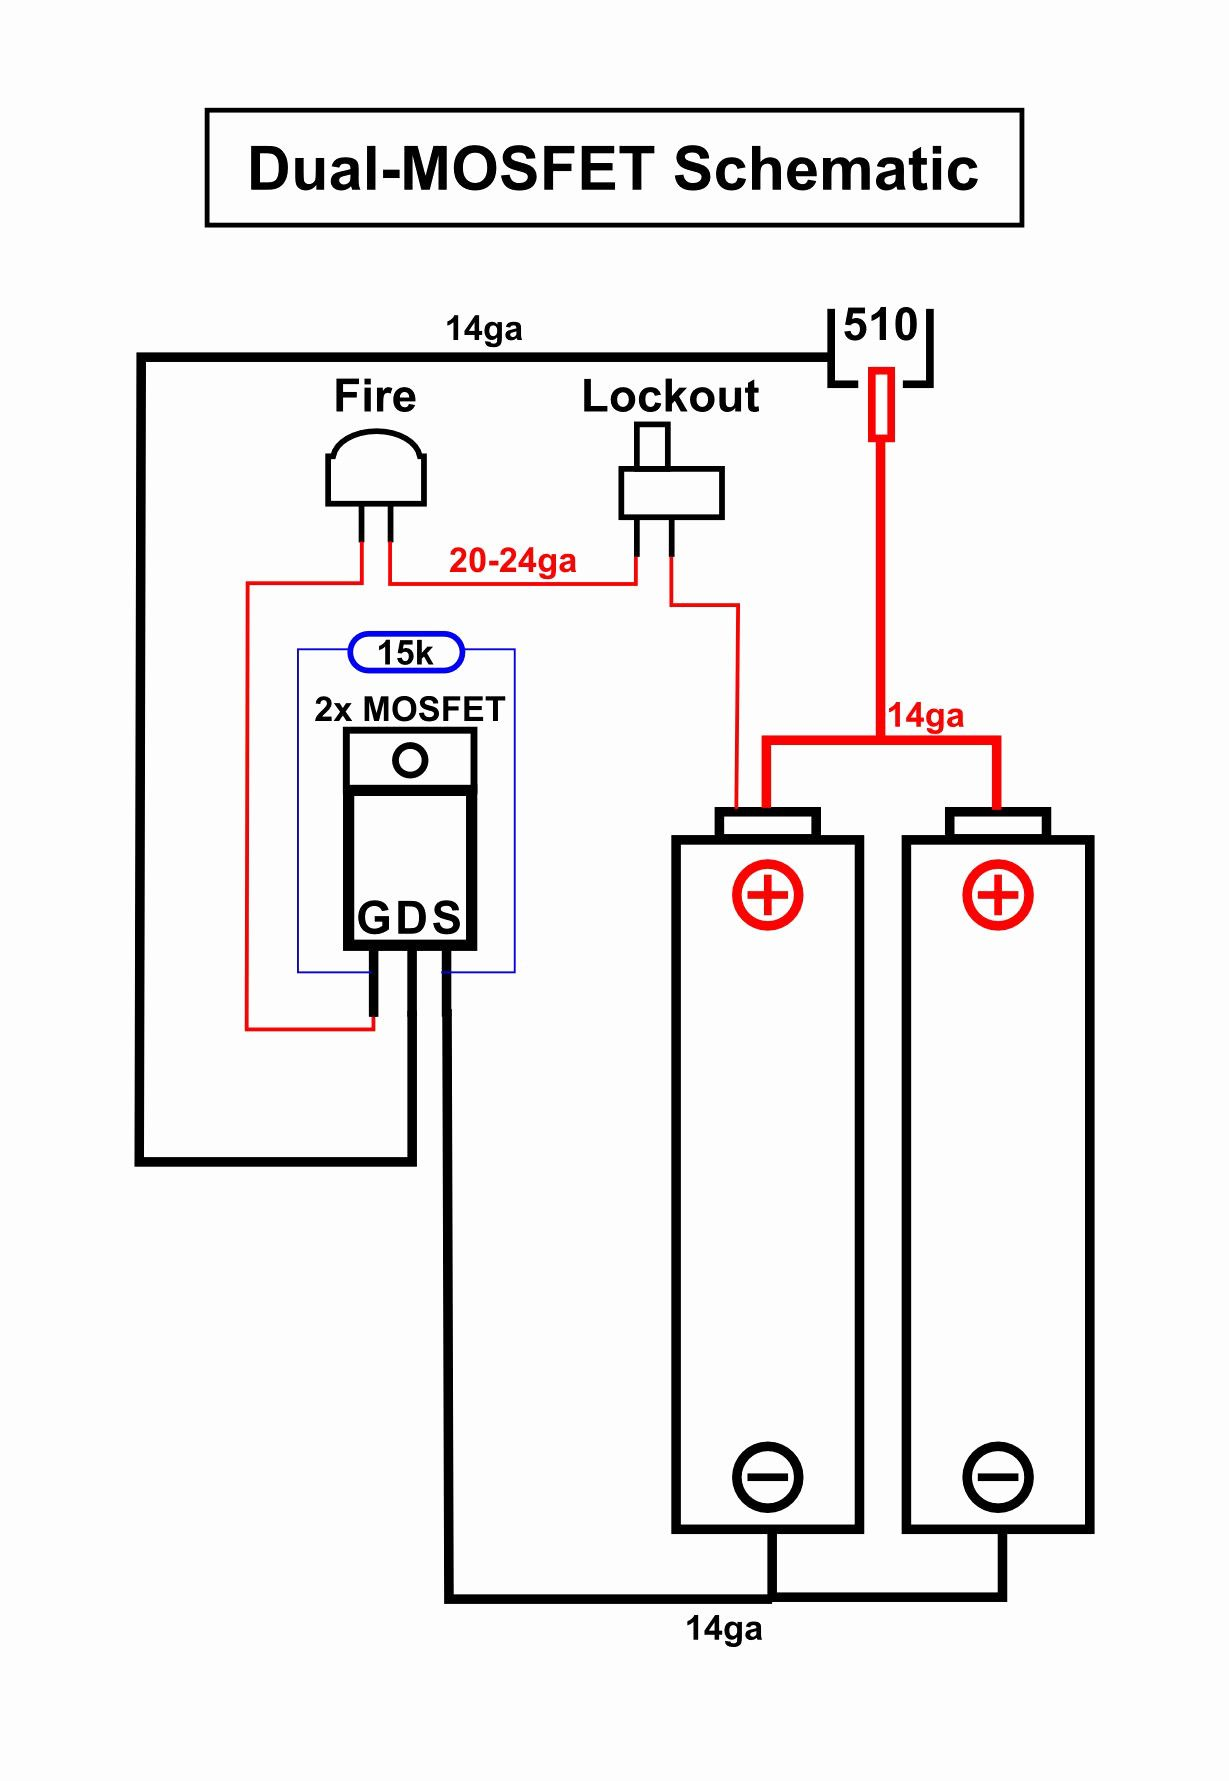 898216f3439f422bc4ab1591bbc2cdce Raptor Mod Box Wiring Diagram on submersible pump control, 14 circuit fuse, gamewell fire alarm, instrument junction, square 200 amp breaker, basic automotive fuse, 60 amp fuse, 110v breaker, for tci,